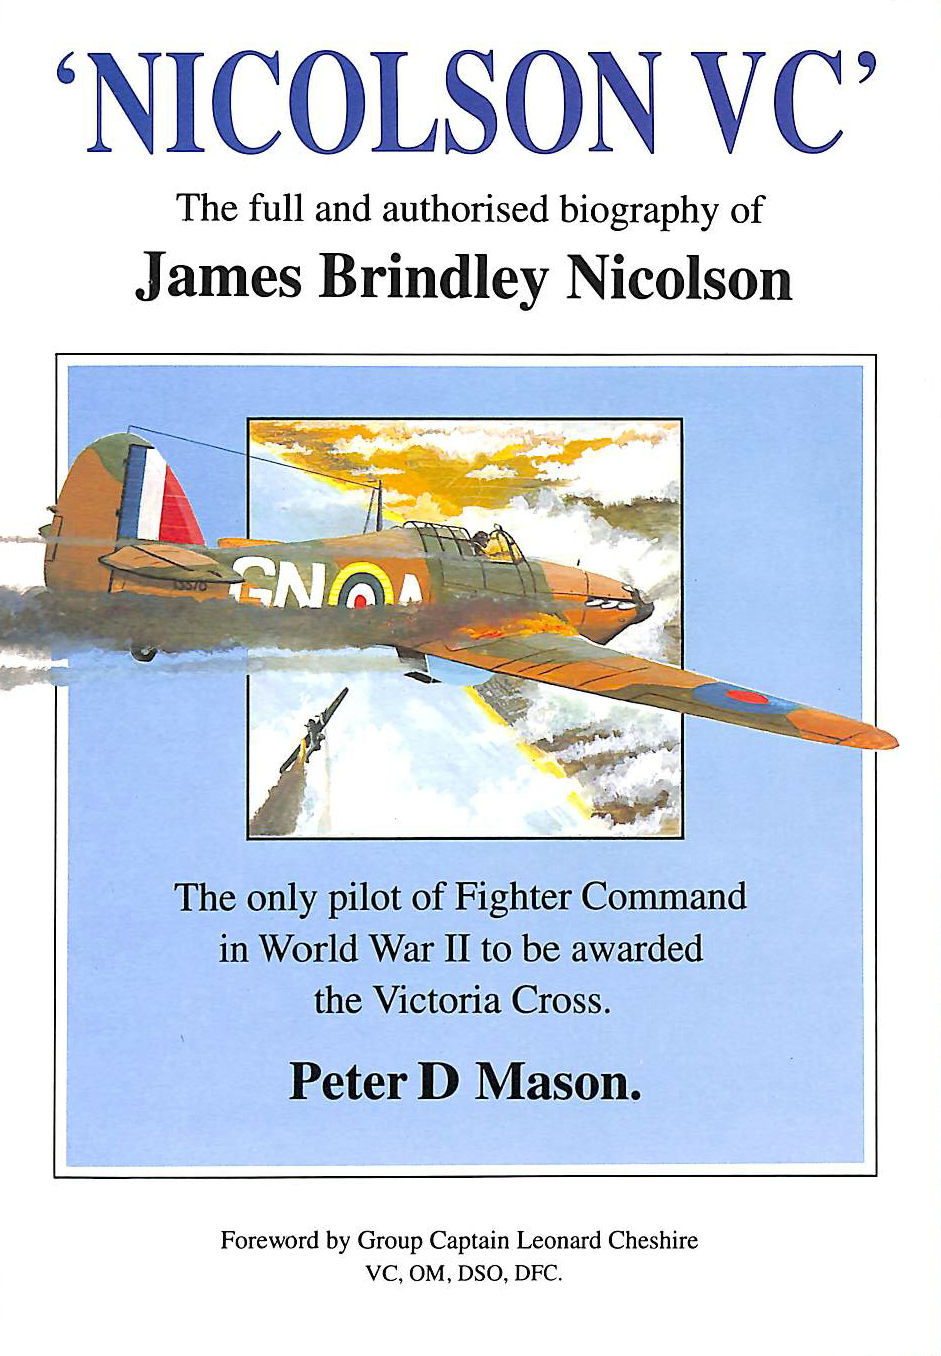 Image for Nicolson V.C.: Full and Authorised Biography of James Brindley Nicolson: The only pilot of Fighter Command in World War II to be awarded the Victoria Cross